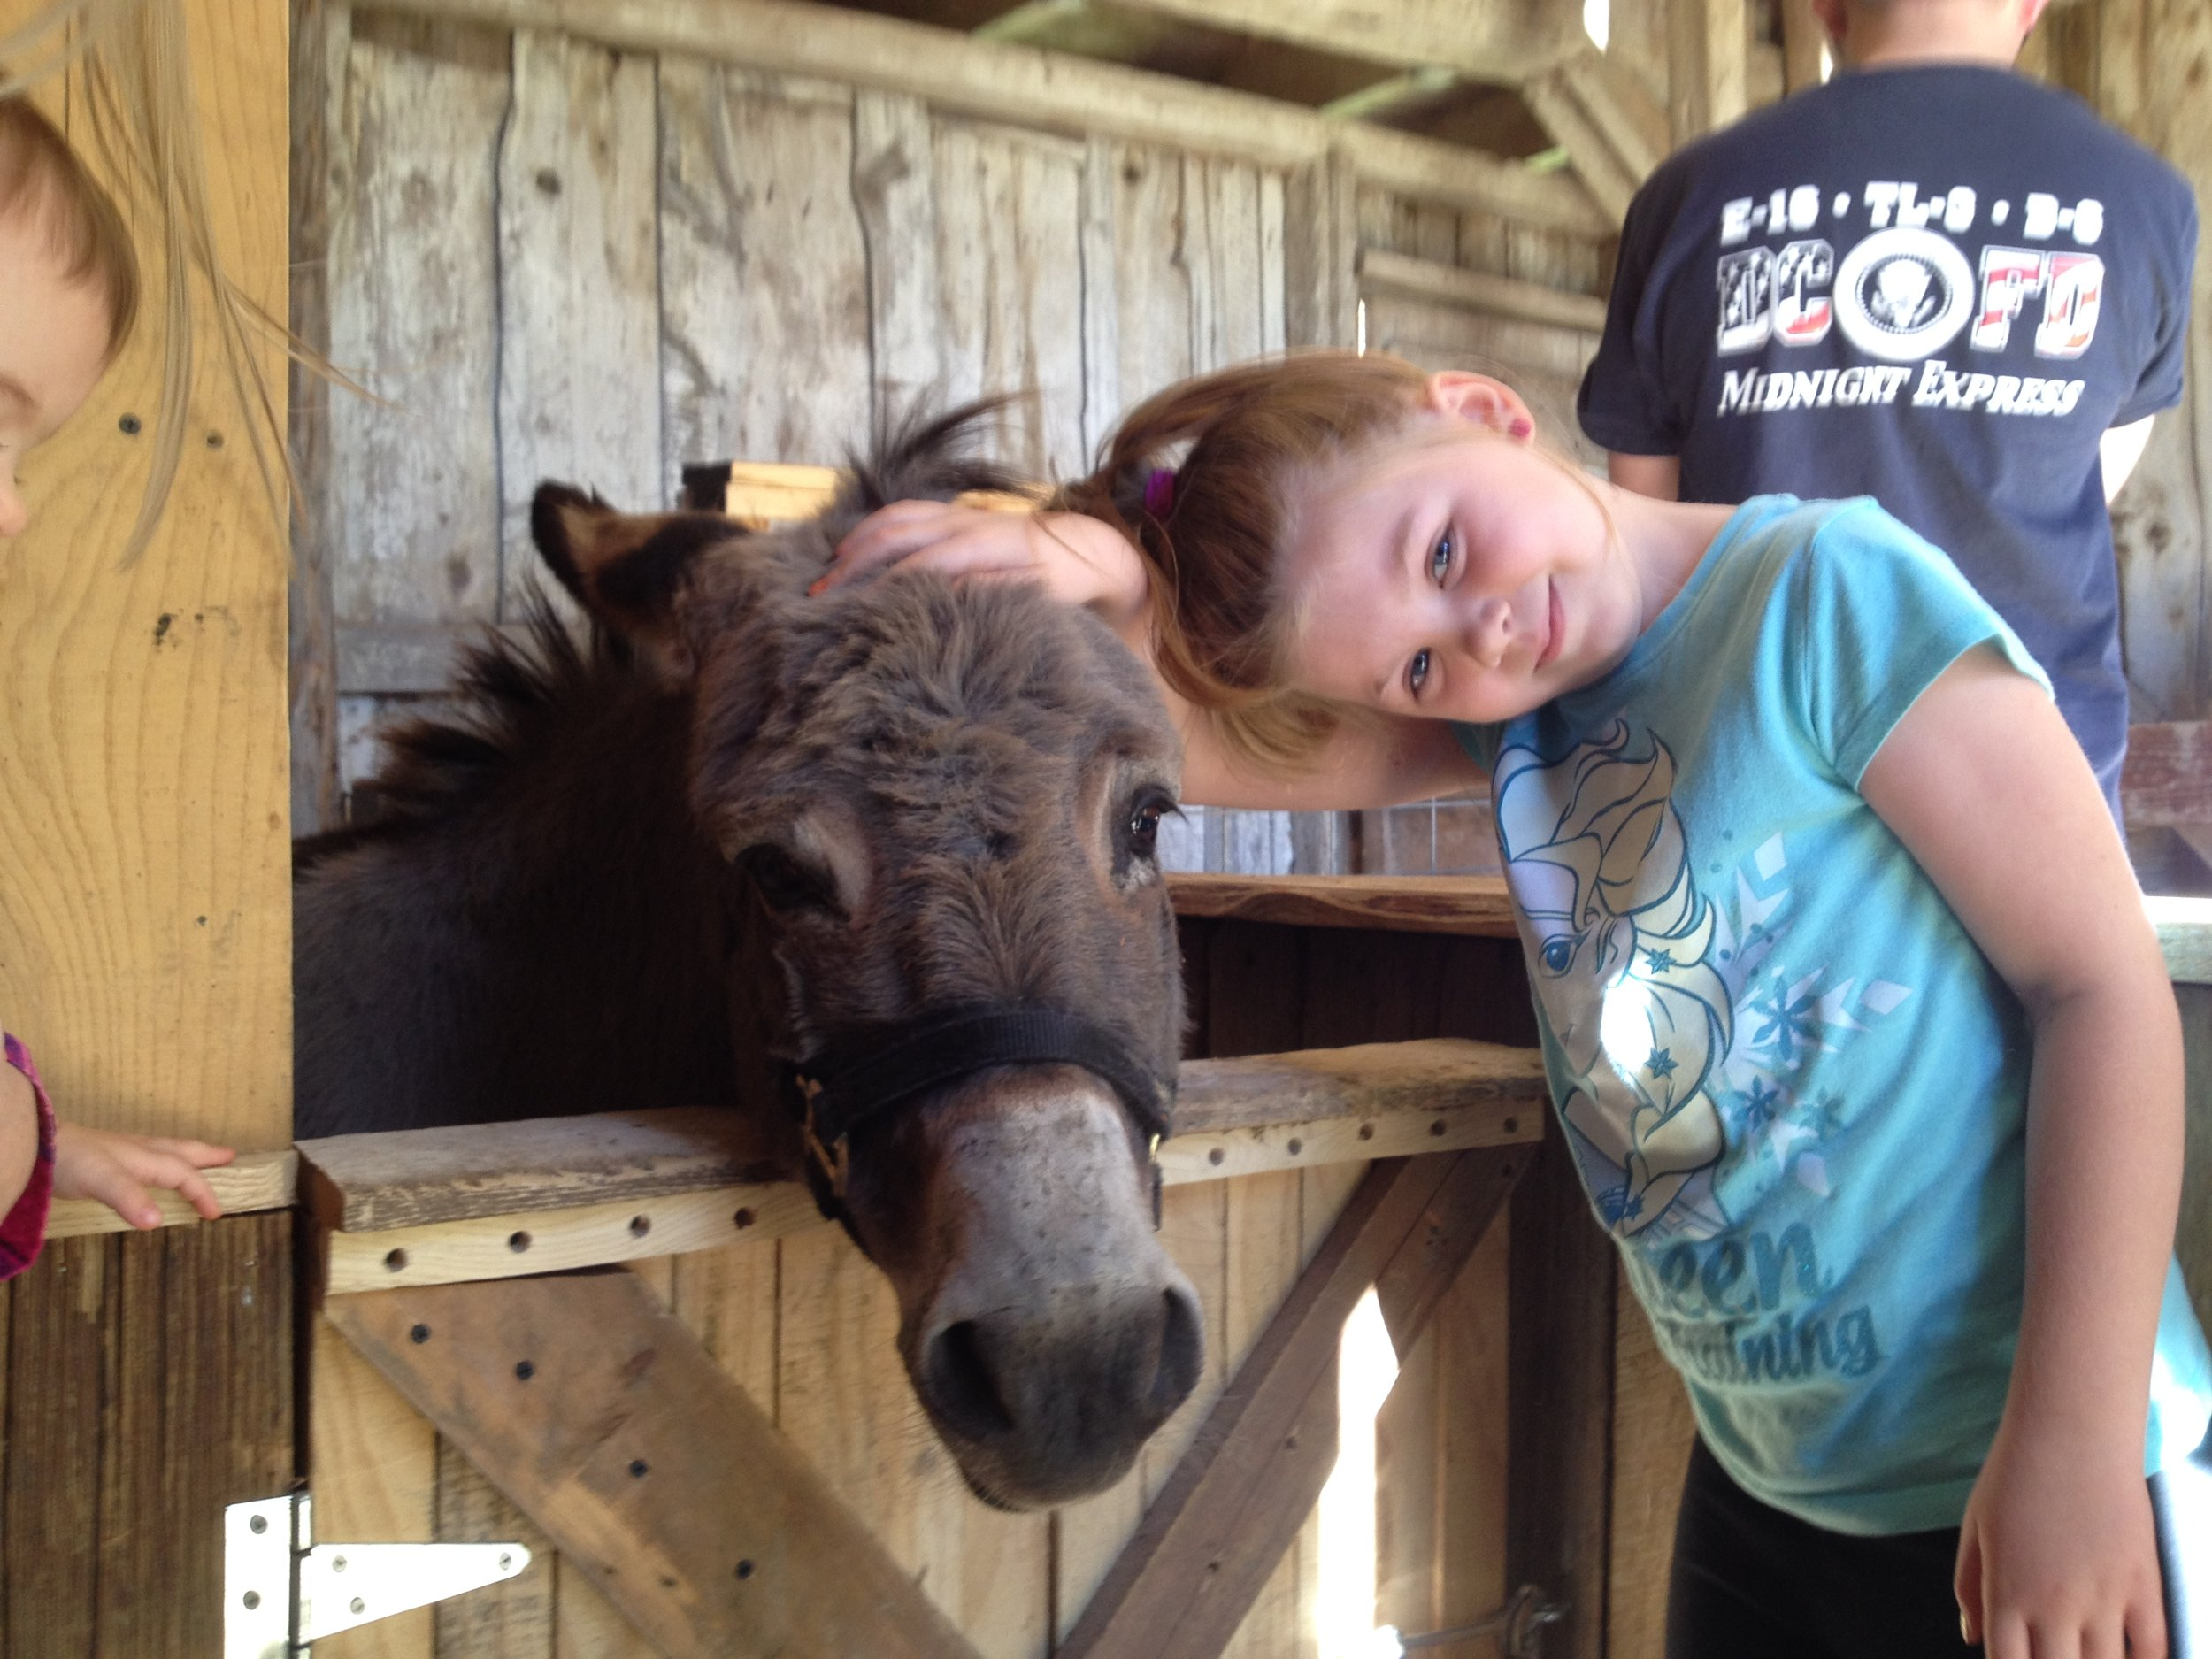 Petting Zoo - We have goats, sheep, rabbits, piglets, a mini horse (Trixie) and a donkey (Sherman). All of these friendly animals are eager to meet you. Feel free to go right inside the petting zoo where you can make friends up close.